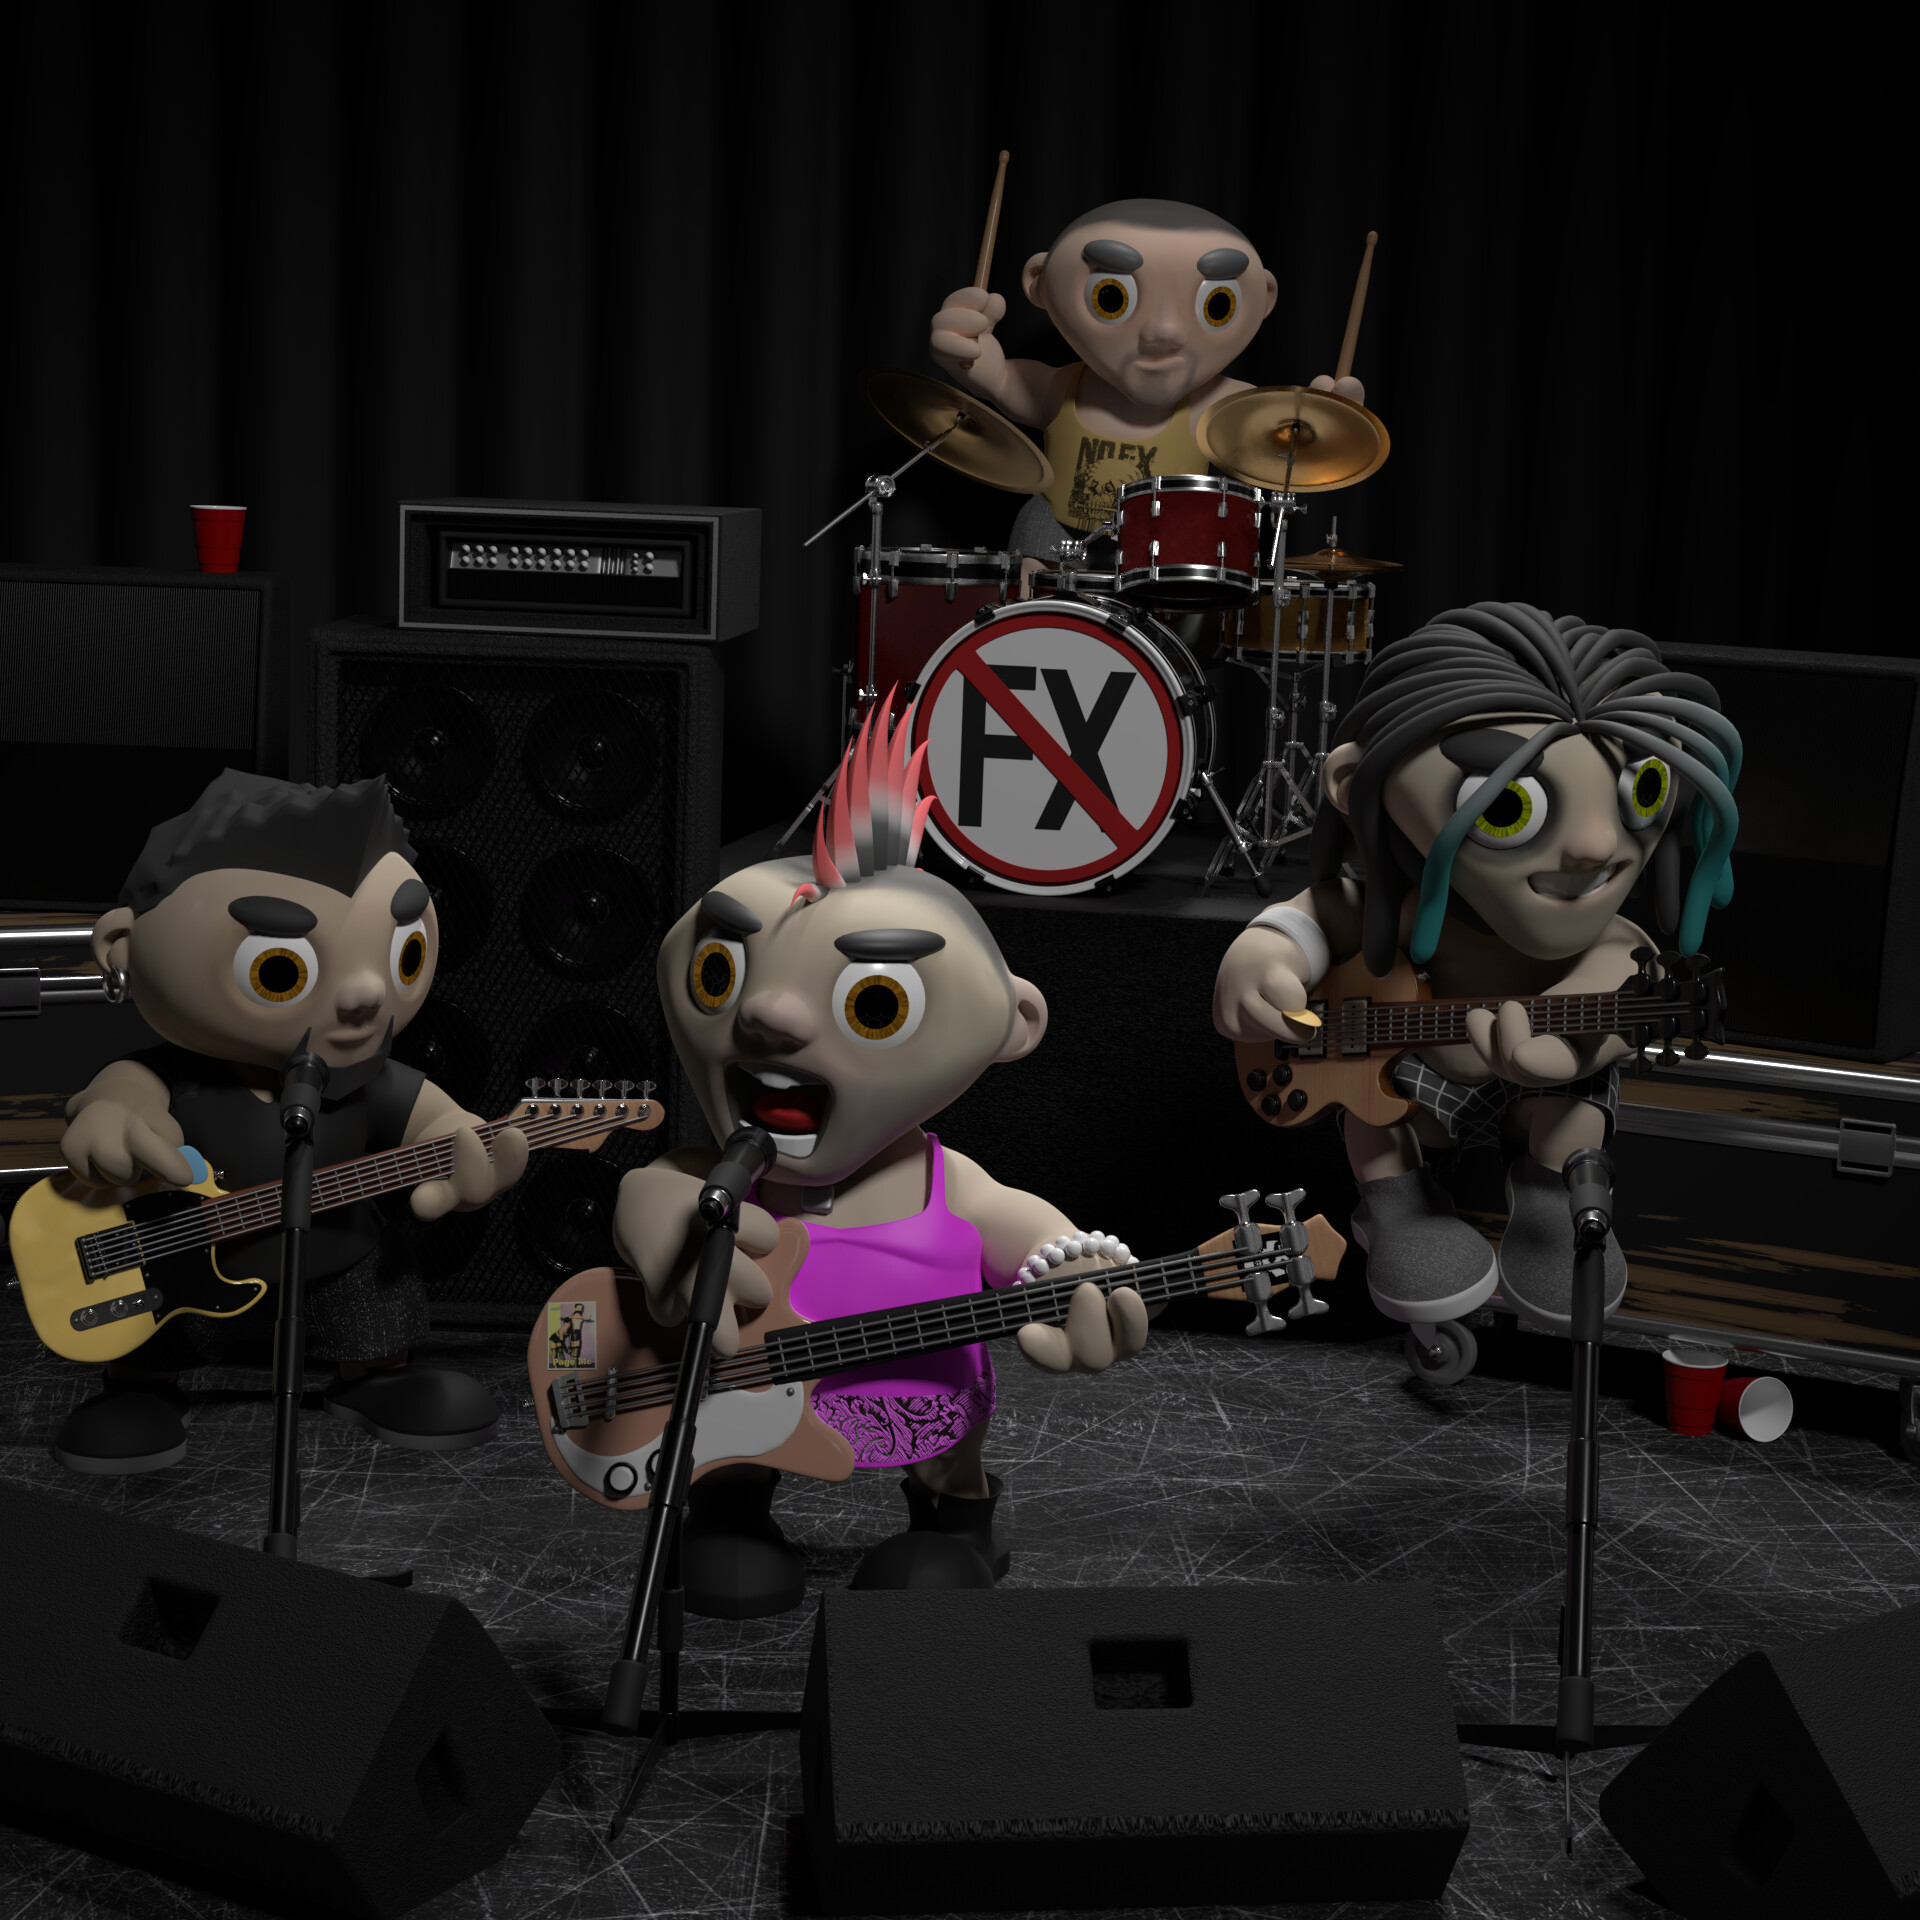 DAY 5: The band rigged and posed in scene with props